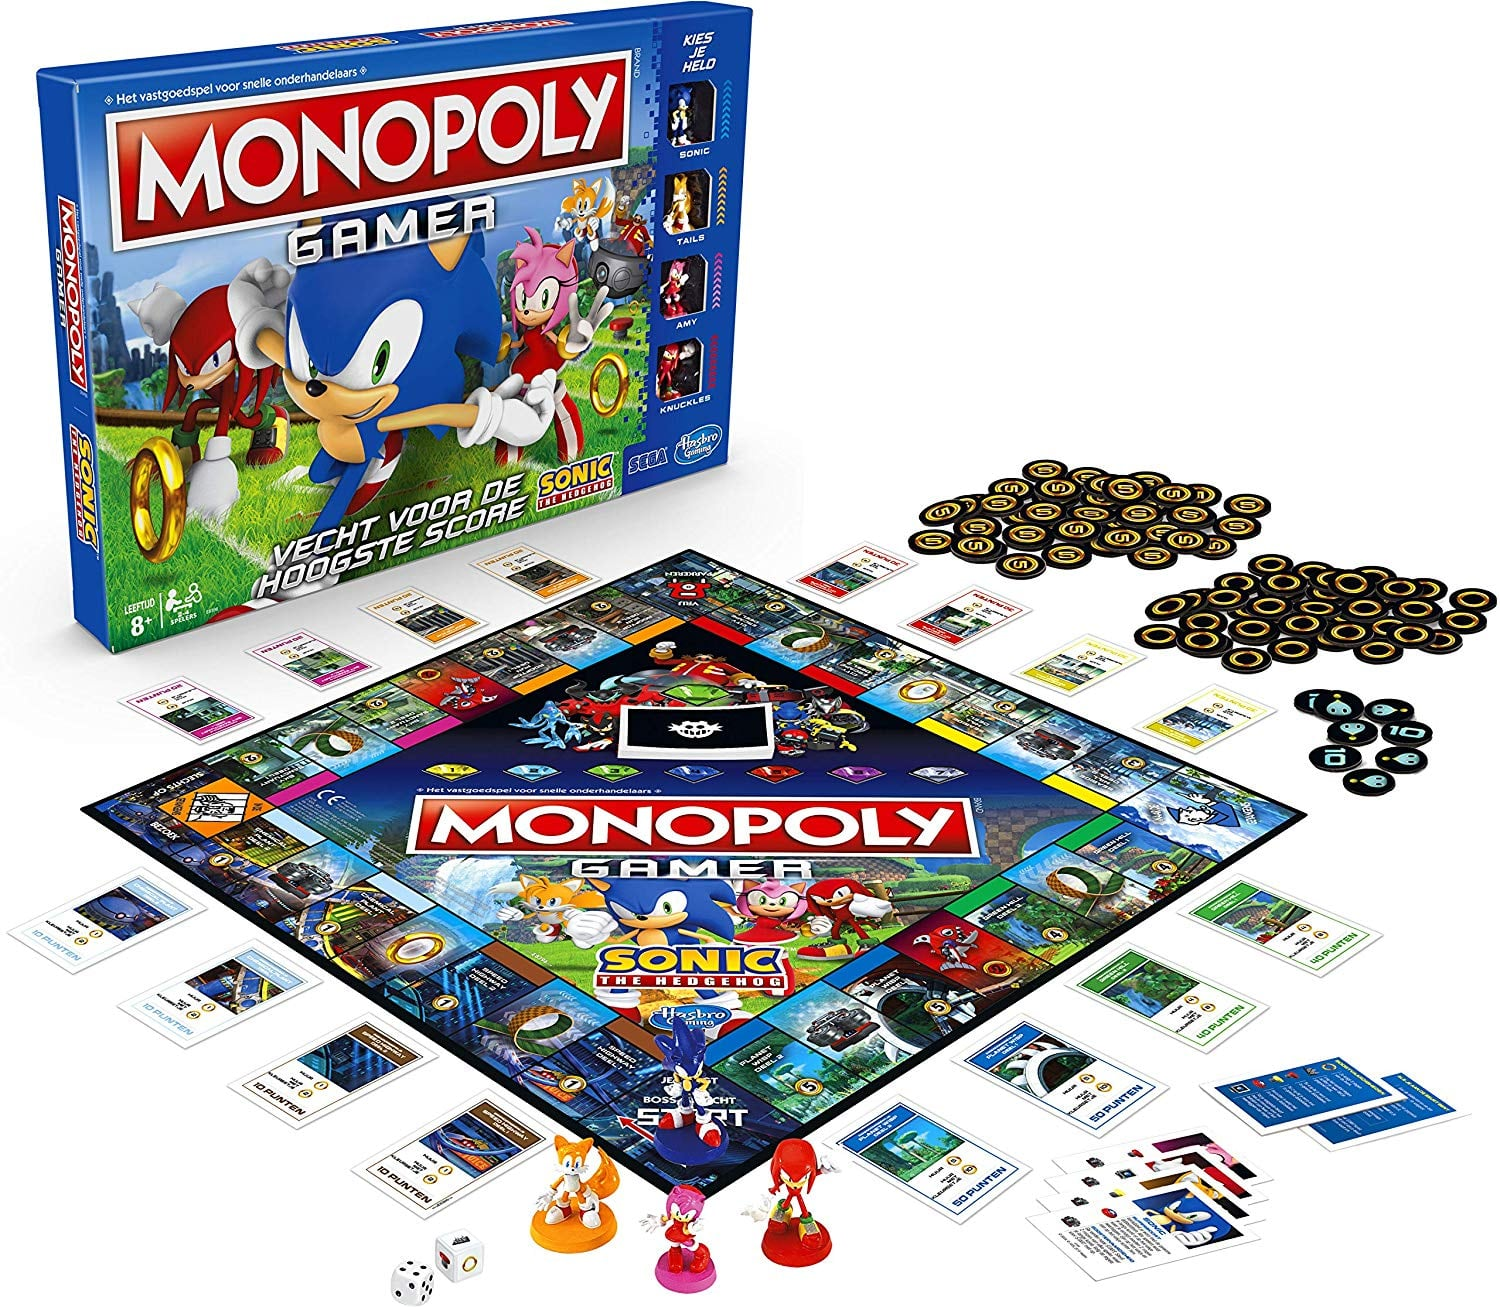 Monopoly Gamer Sonic The Hedgehog Edition Board Game for $11.99